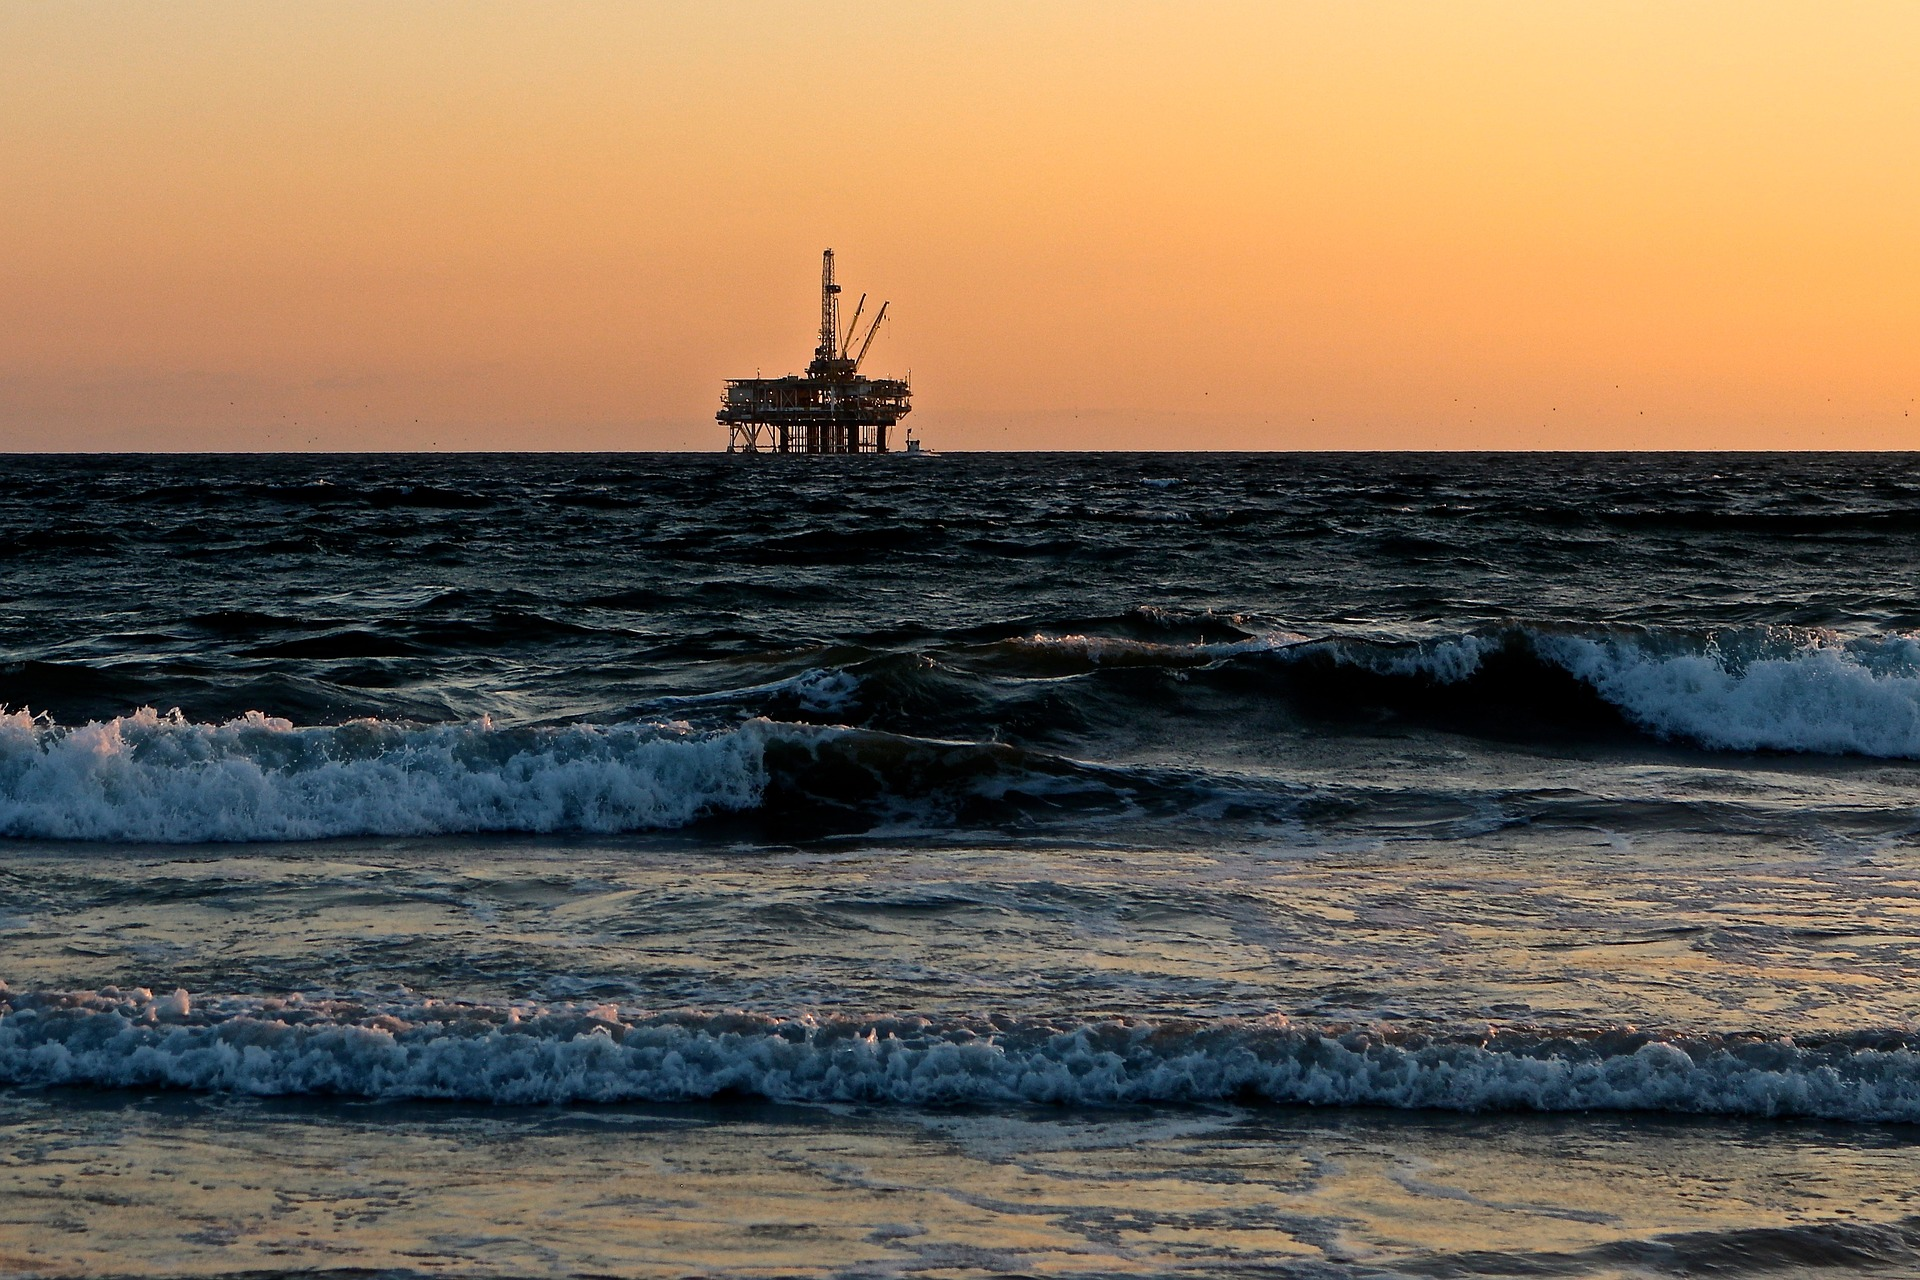 The sea with an oil rig in the distance